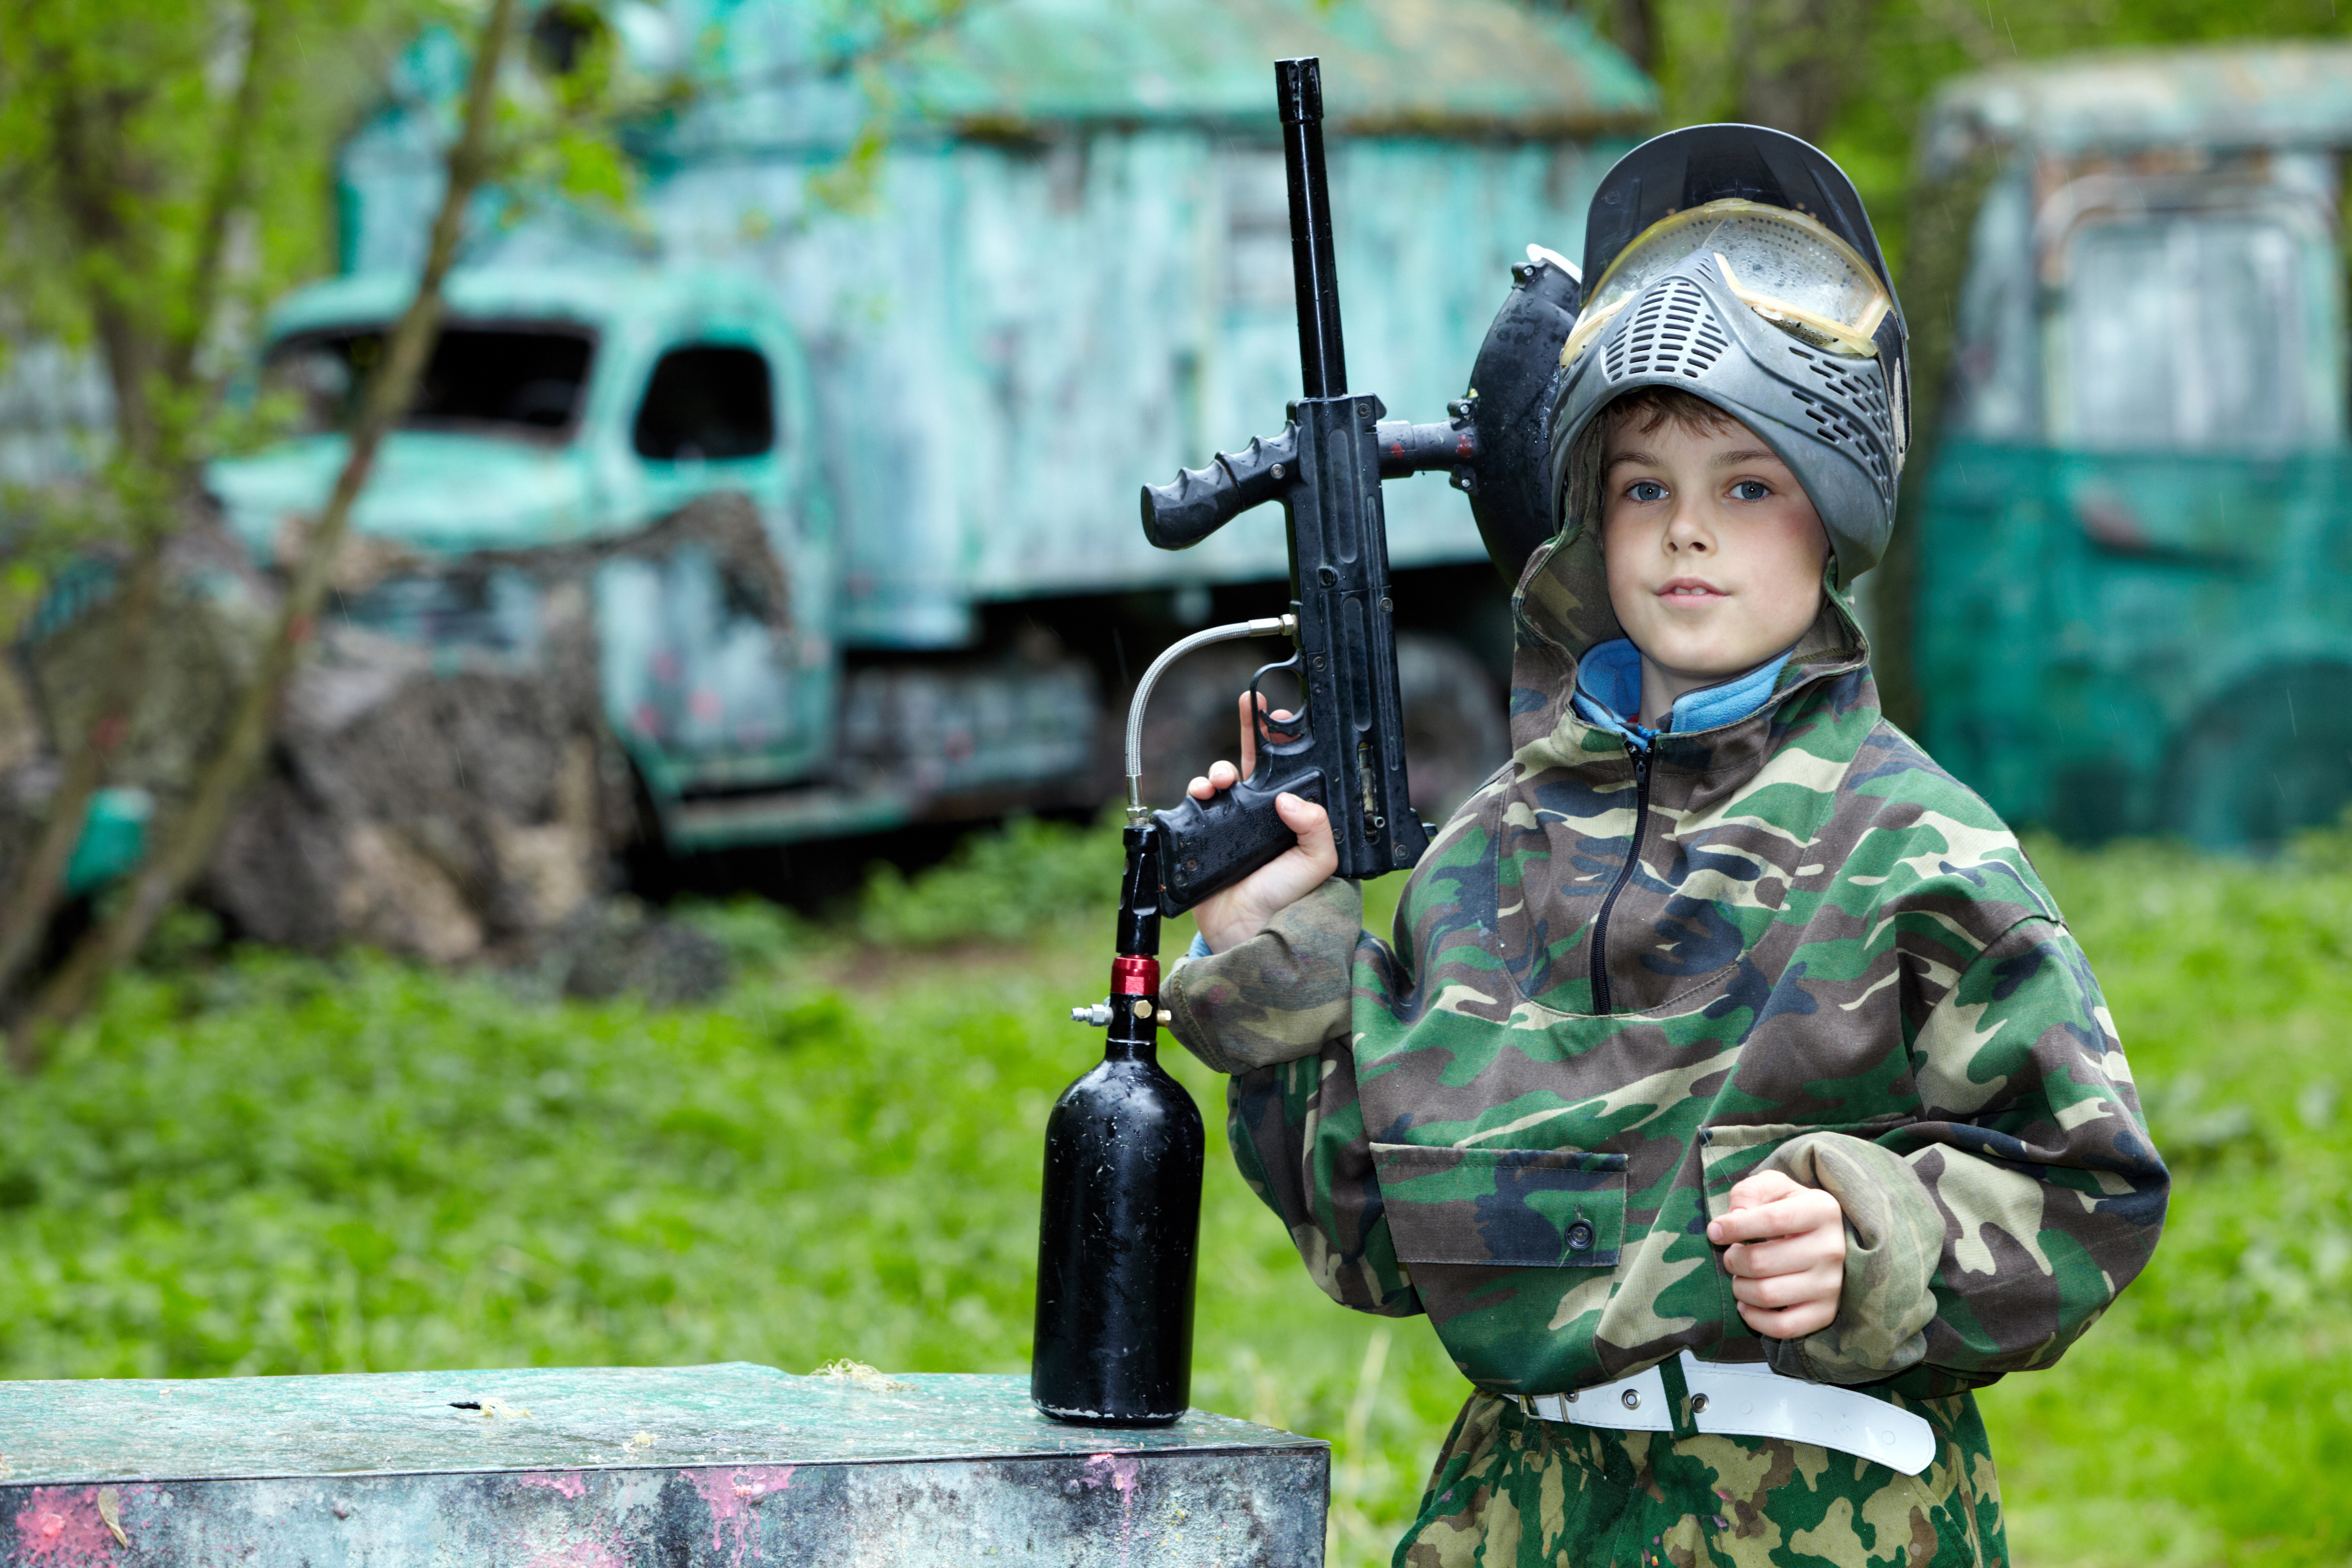 Paintball, a strategy game